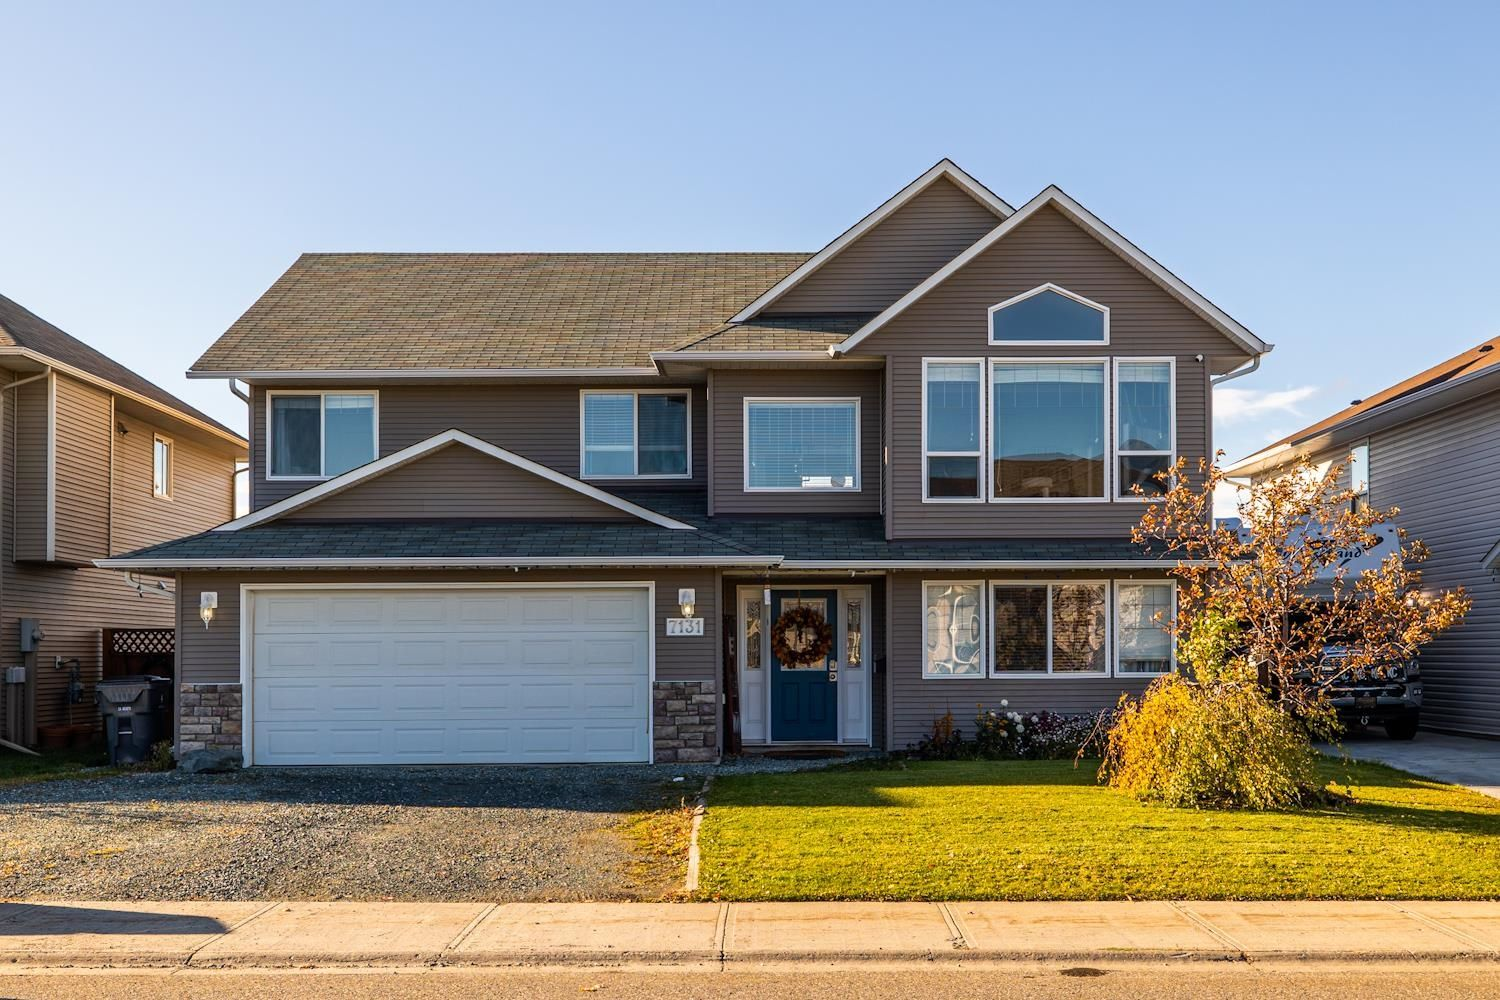 Main Photo: 7131 WESTGATE Avenue in Prince George: Lafreniere House for sale (PG City South (Zone 74))  : MLS®# R2625722